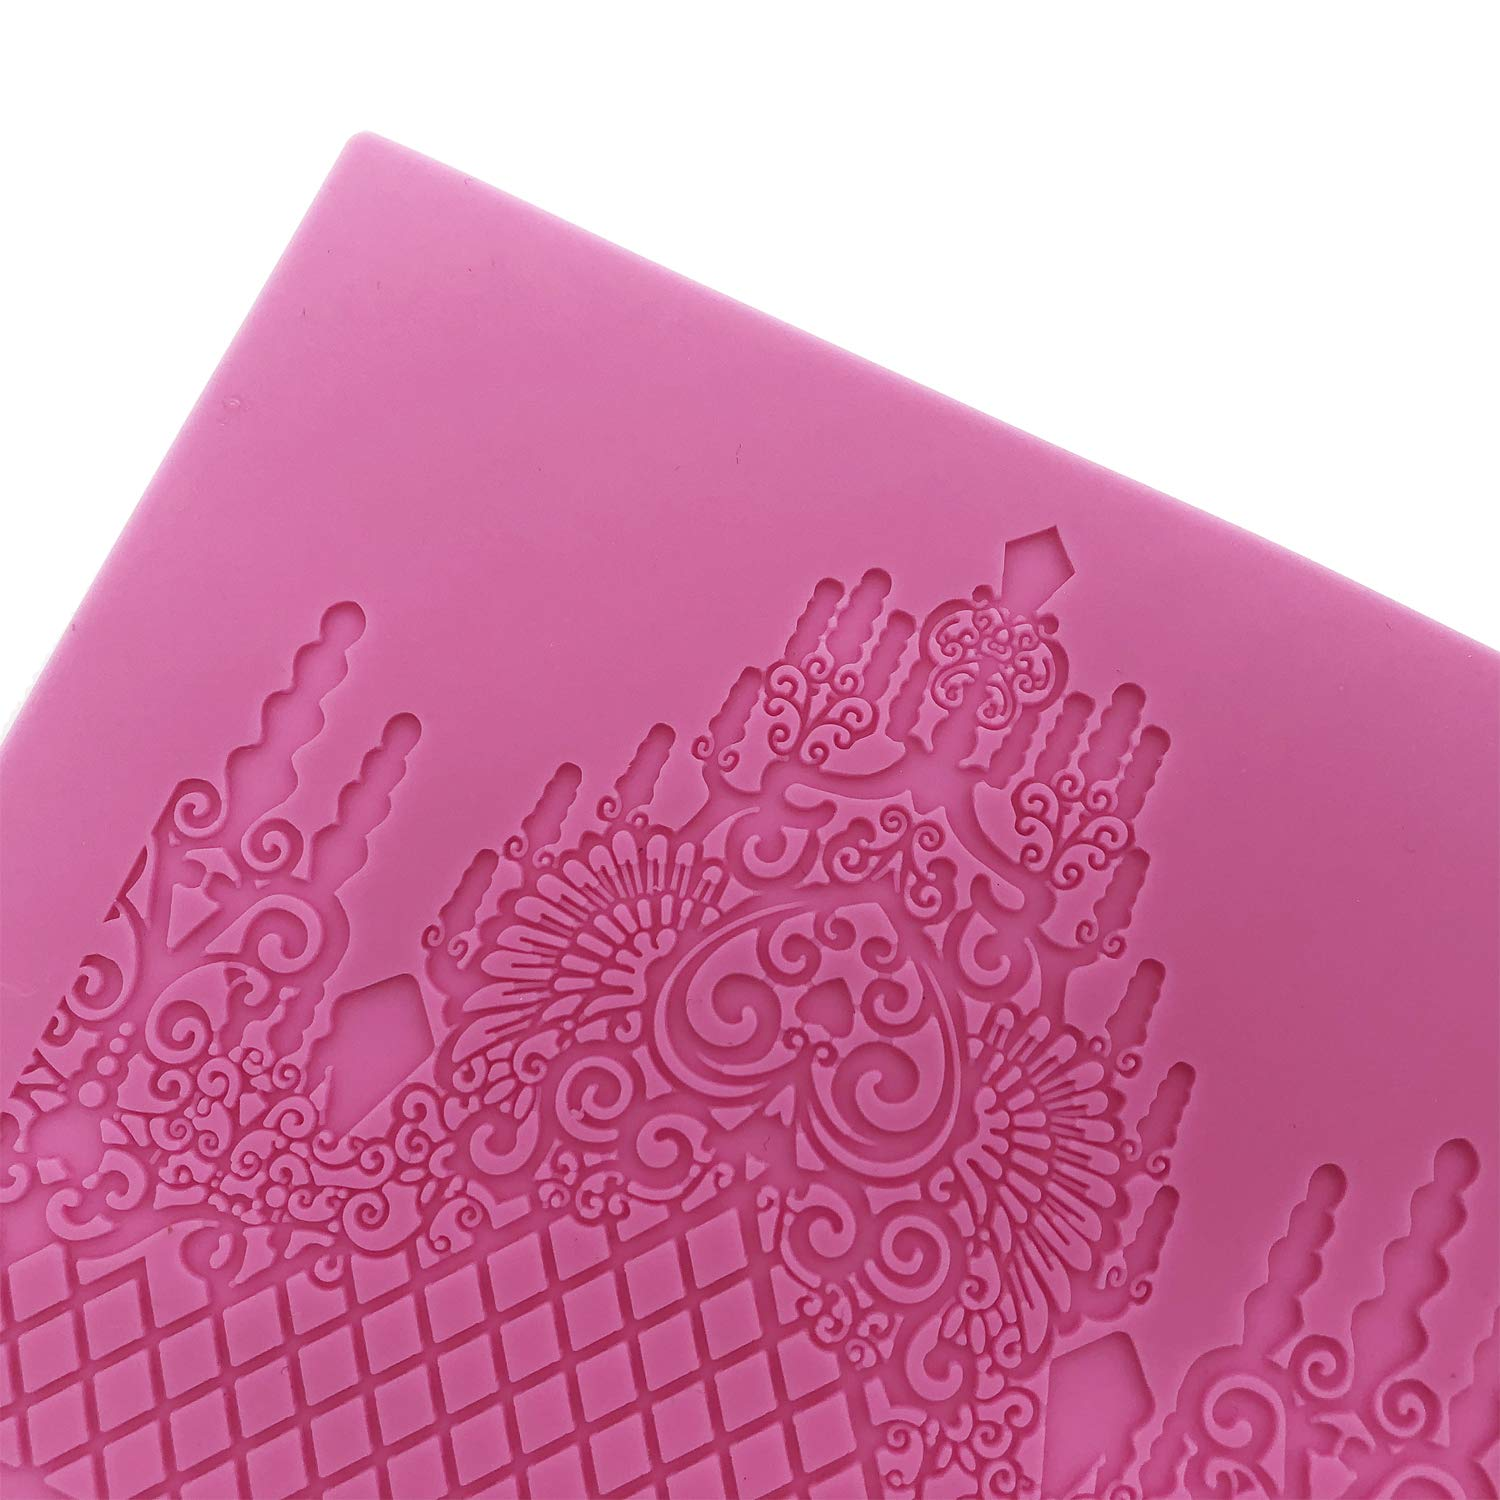 Silicone Lace novit/à Lace silicone Mold Sugarcraft torta nuziale Decor impressione Gum pastry Tool Kitchen Tool Sugar paste baking Mould Cookie pastry Butterfly